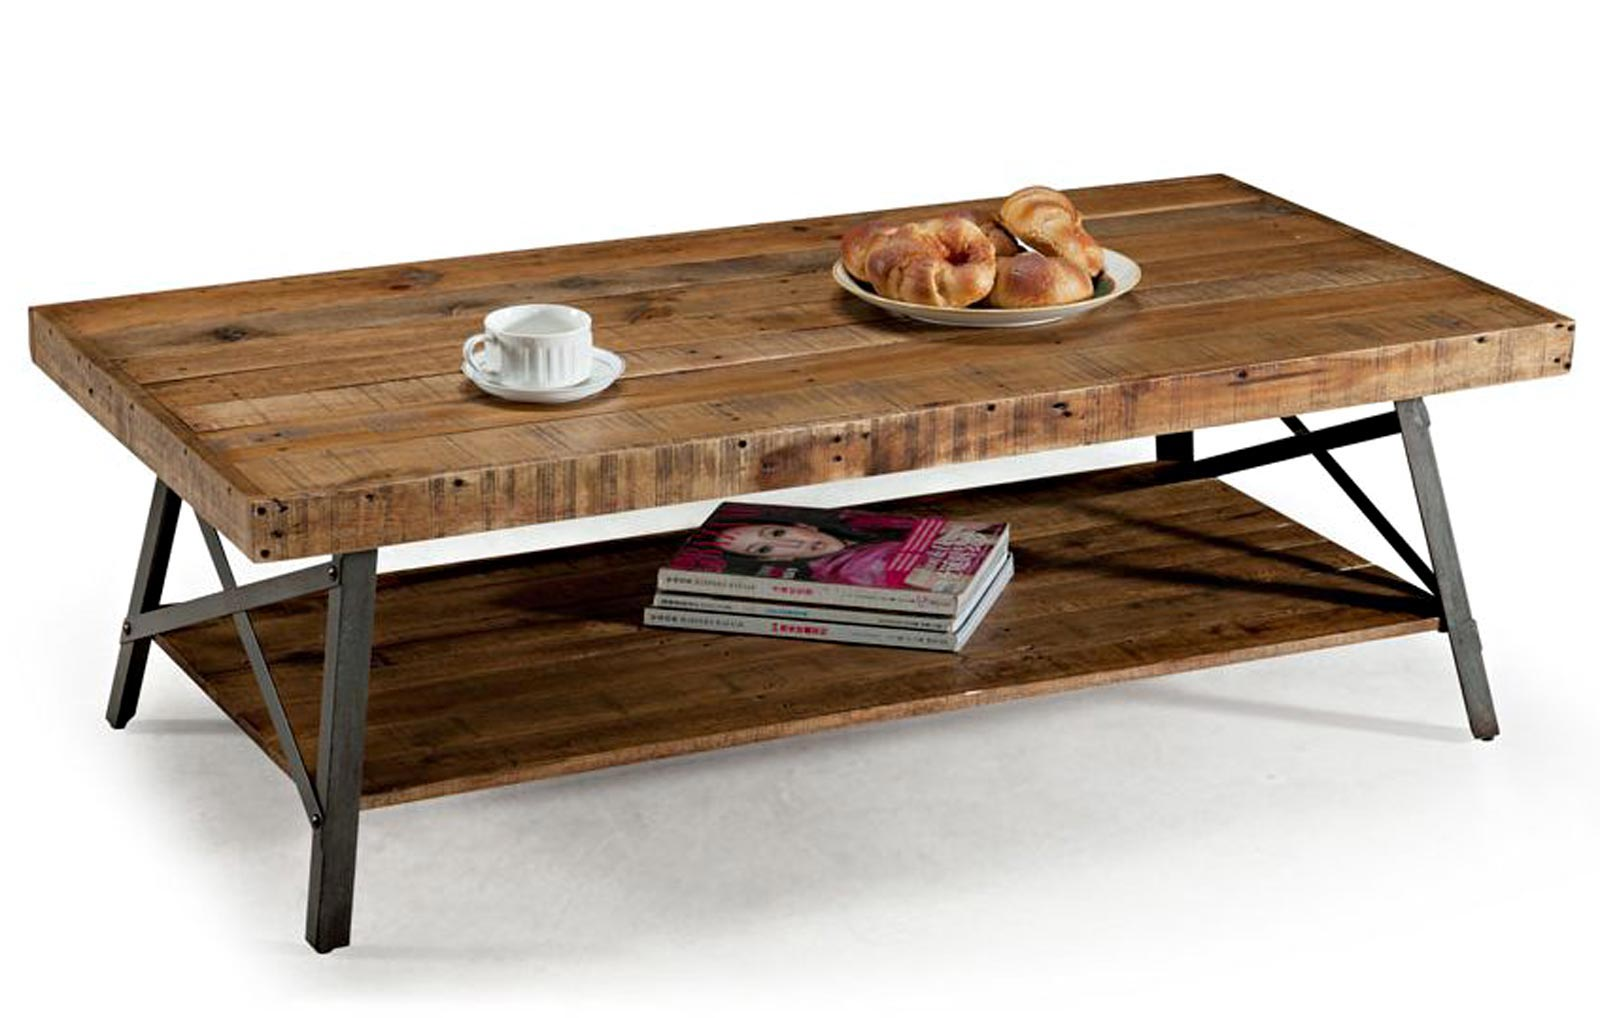 Rustic Industrial Reclaimed Wood Iron Metal Coffee Cocktail Table Rustic Wood And Iron Coffee Table (Image 6 of 10)